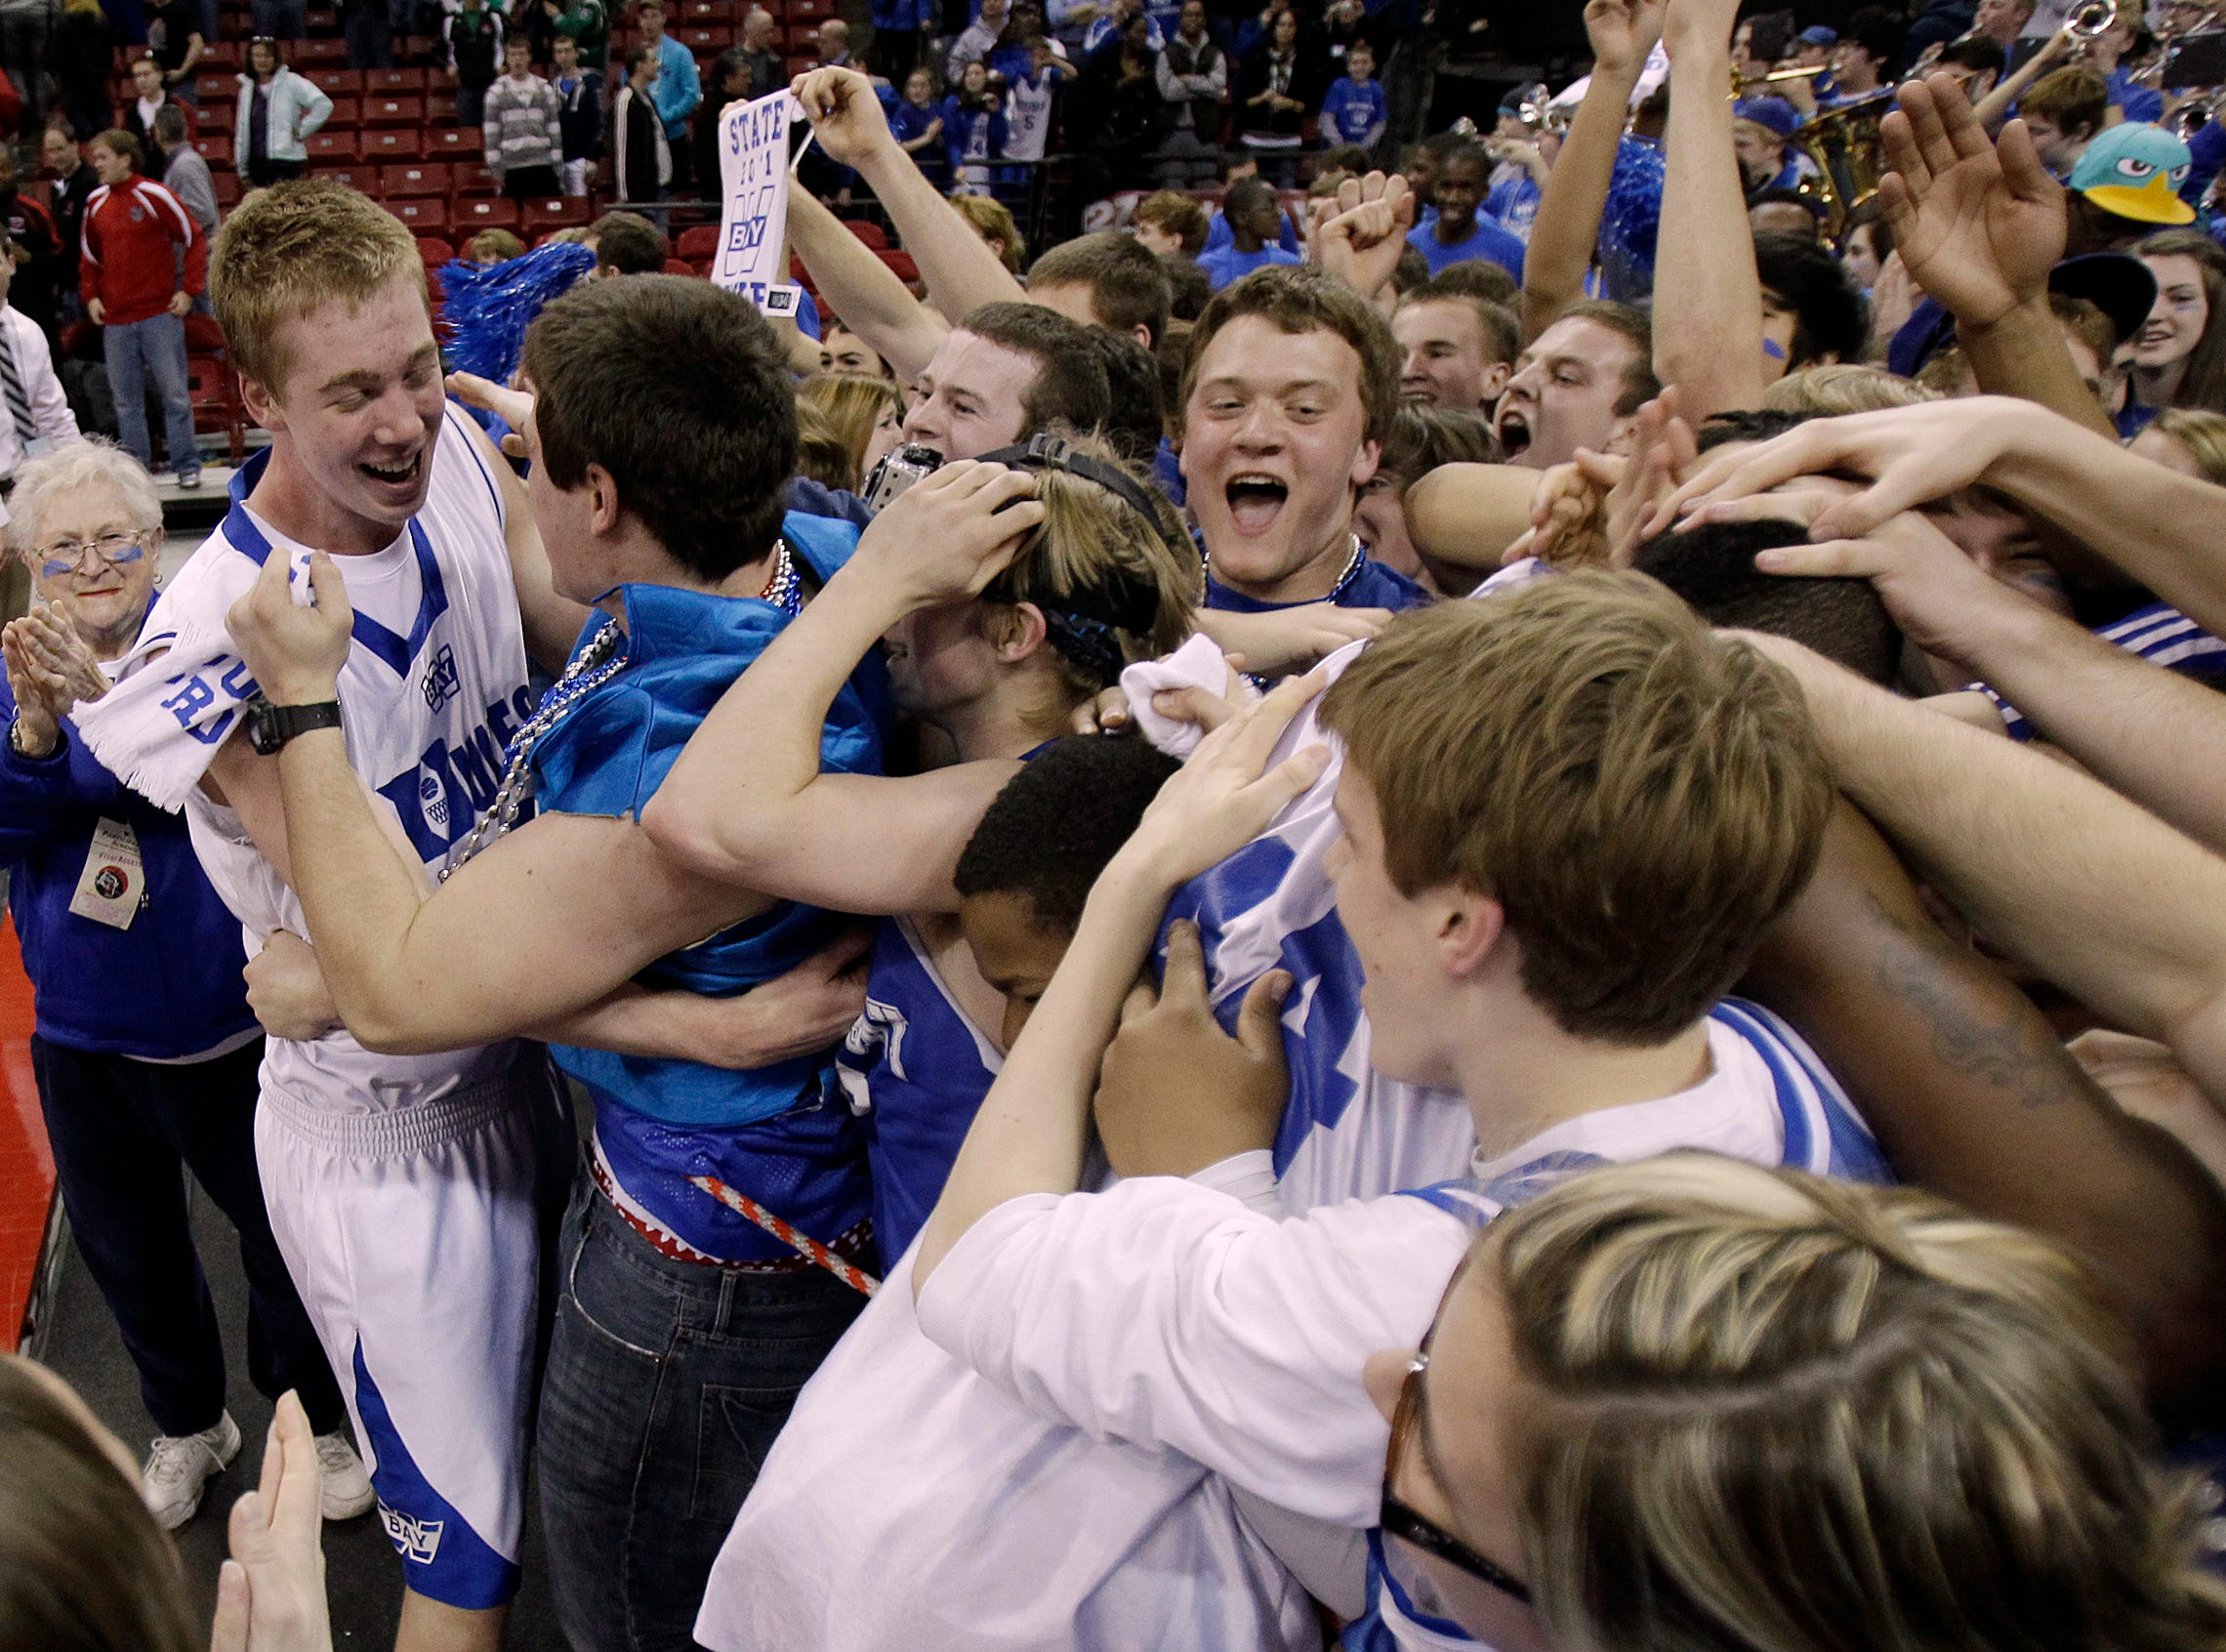 Whitefish Bay's Jamie Schneck is greeted by fans after beating  Seymour  during the 2011 WIAA state basketball tournament at the Kohl Center.